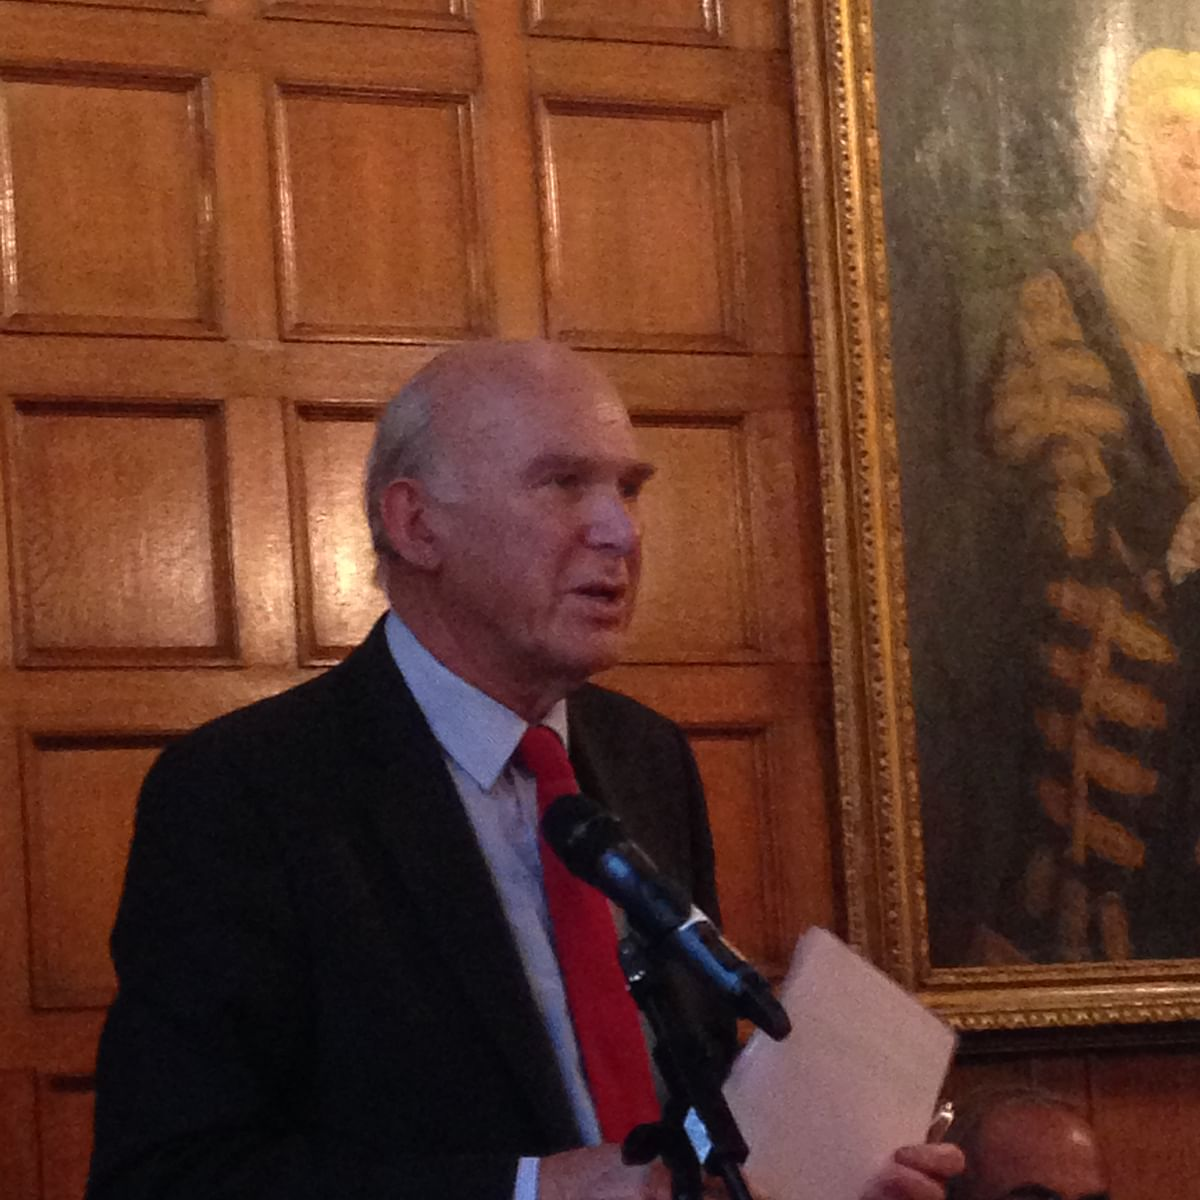 Sir Vince Cable, then UK's Secretary of State for Business, Innovation and Skills, at an event held to commemorate Sarat Chandra Bose's 125th birth anniversary in 2014